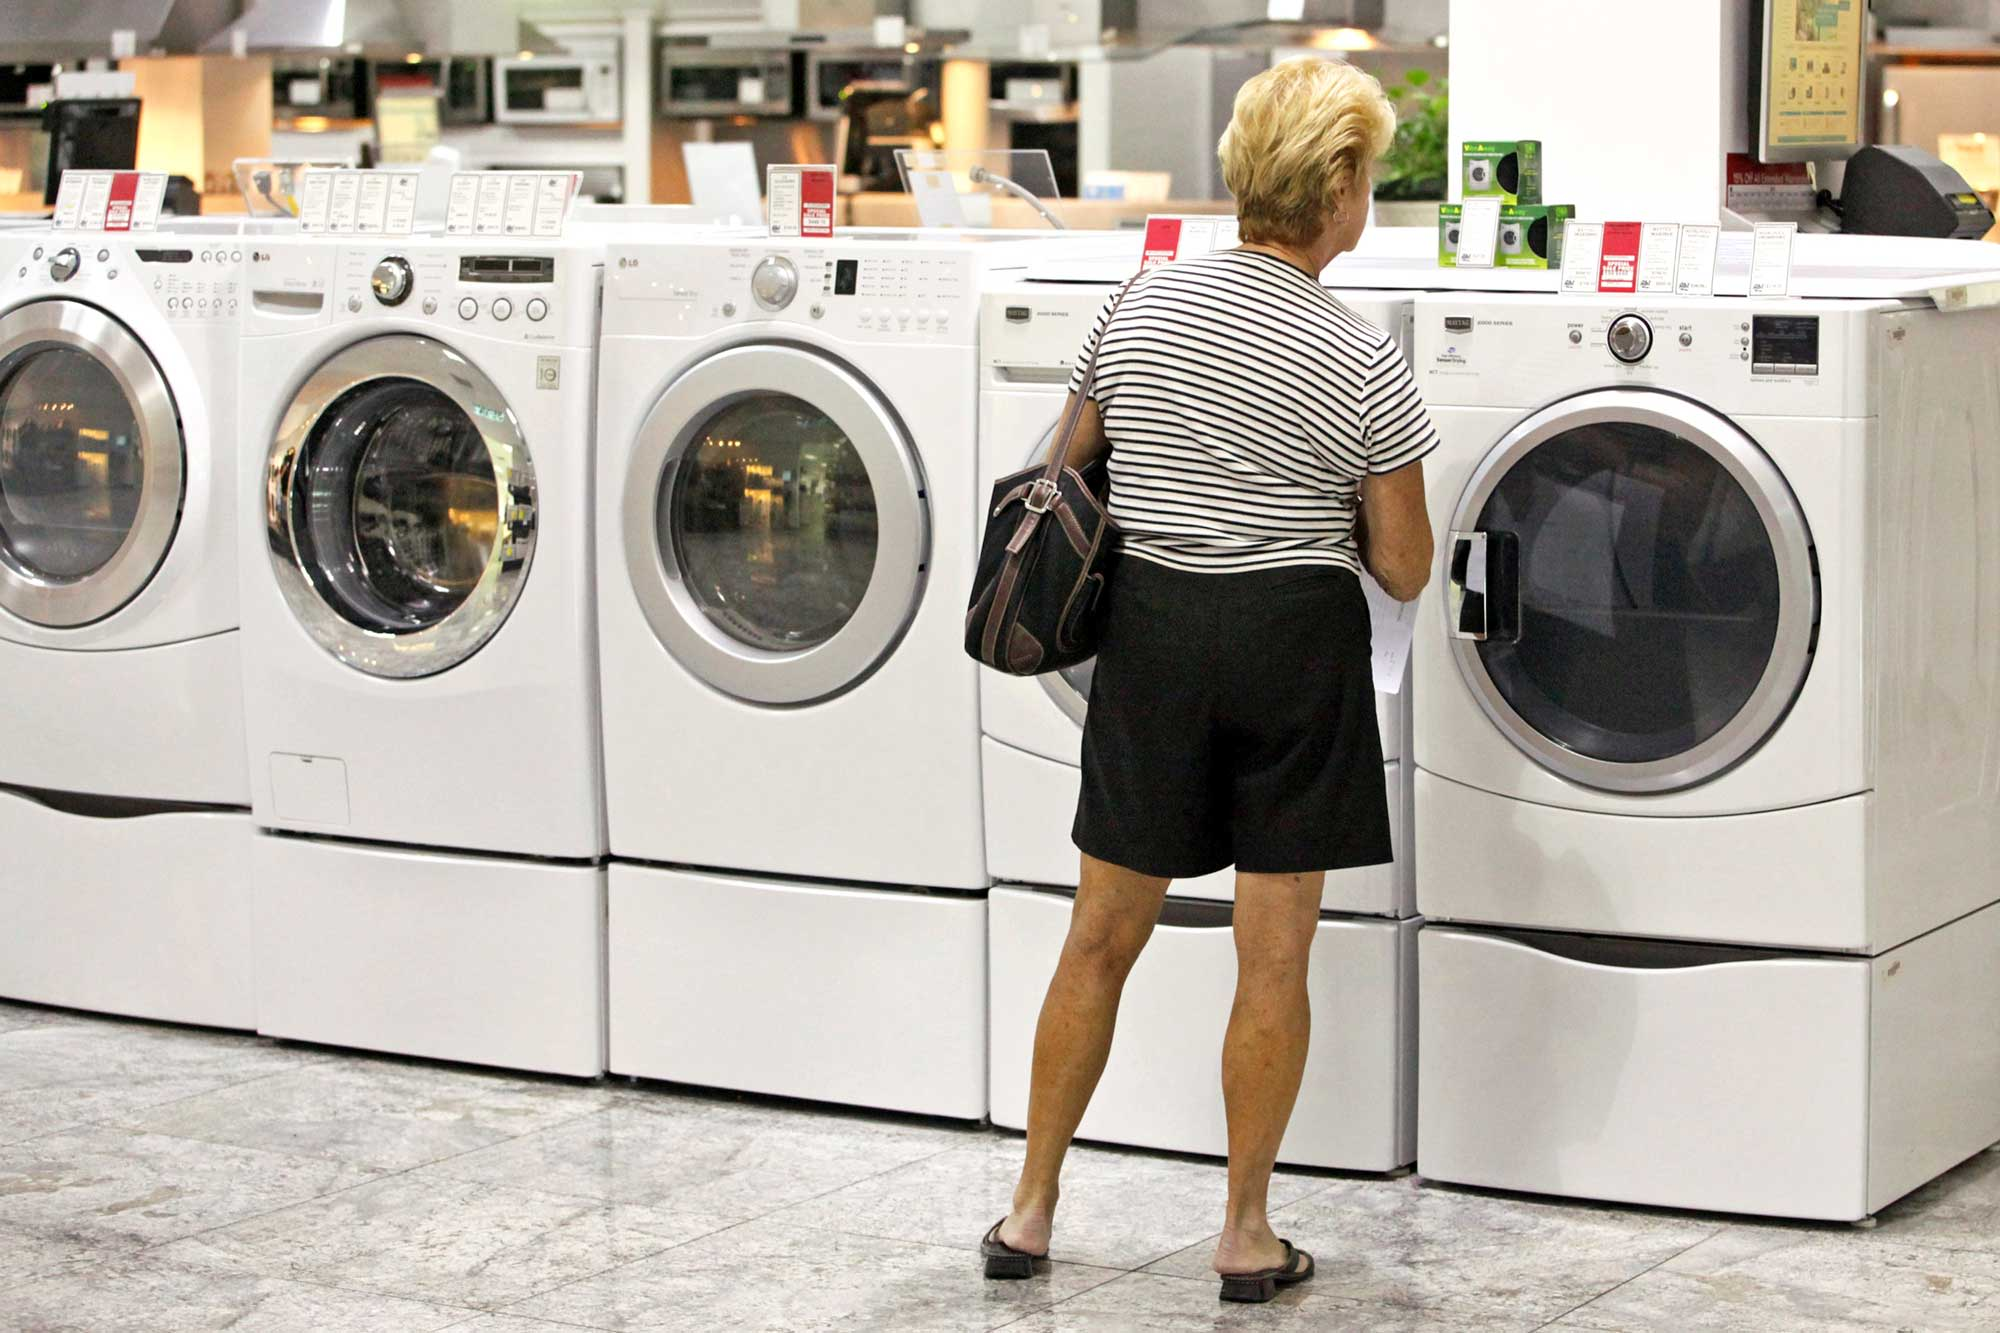 US durable goods orders unexpectedly jump 1.2% in February - CNBC thumbnail